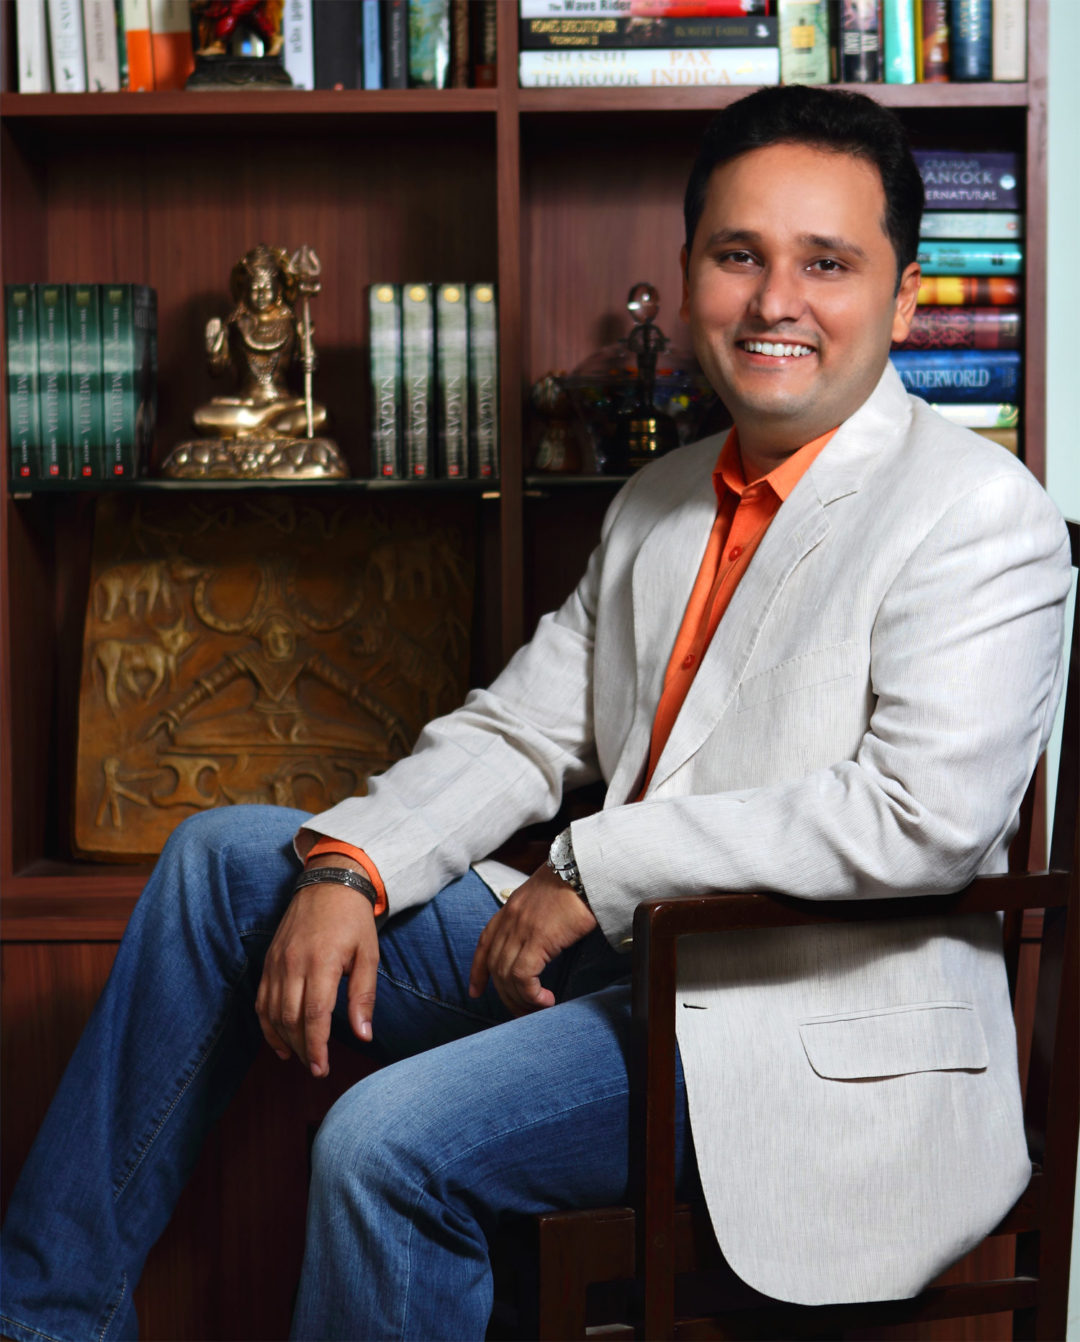 amish-tripathi-height-weight-age-affairs-body-measurements-3